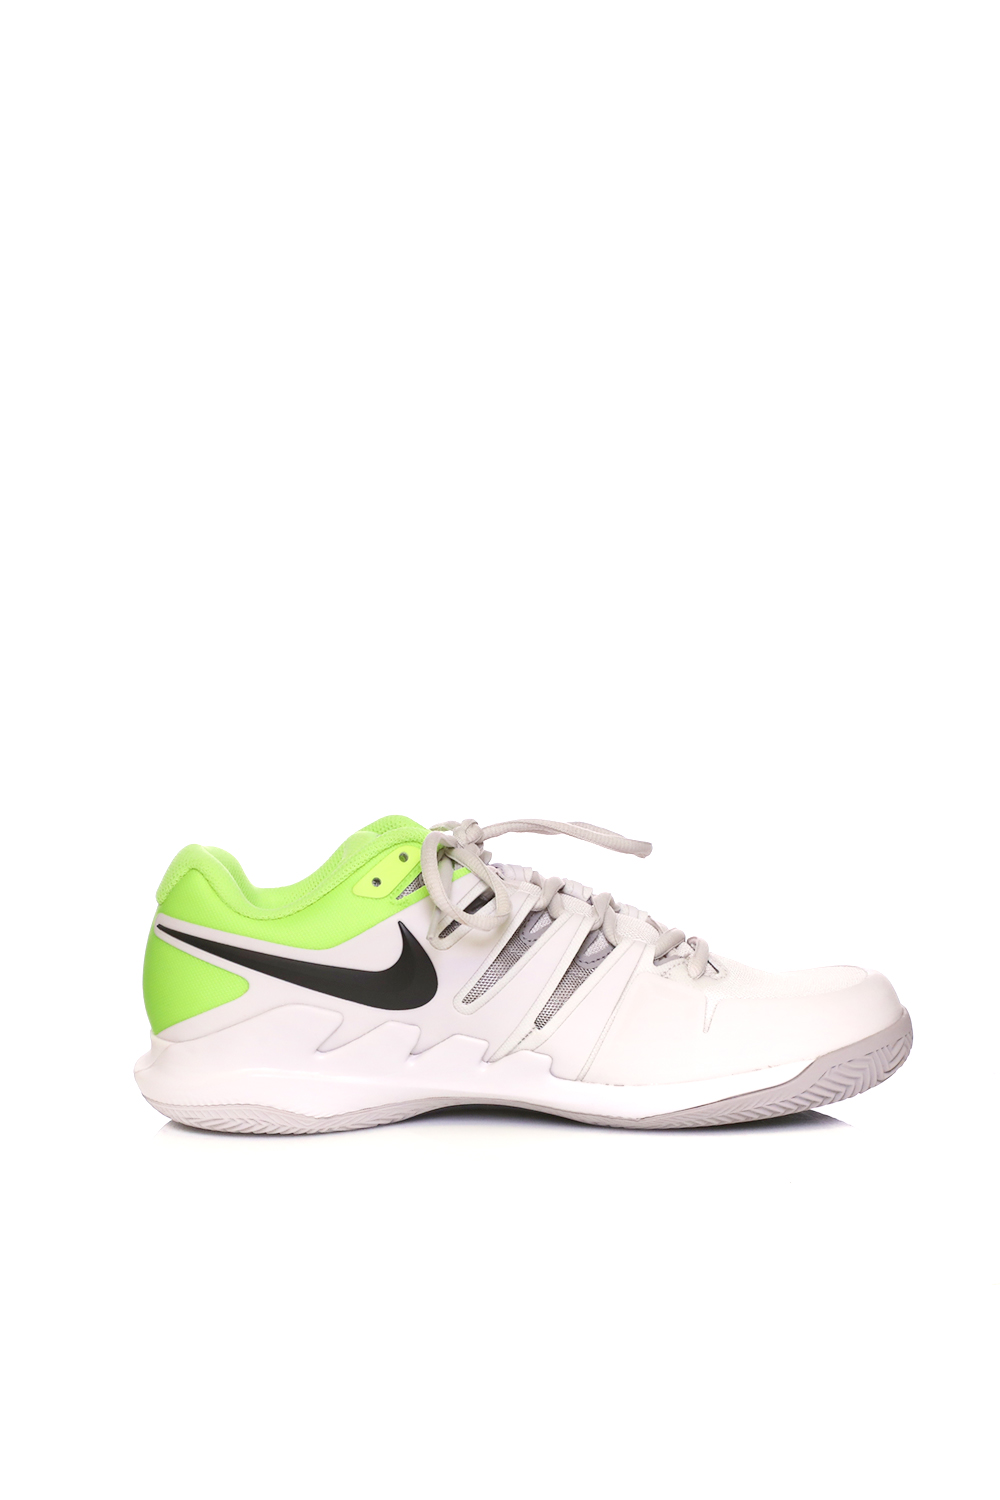 NIKE – Ανδρικά παπούτσια τένις NIKE AIR ZOOM VAPOR X CLAY λευκά